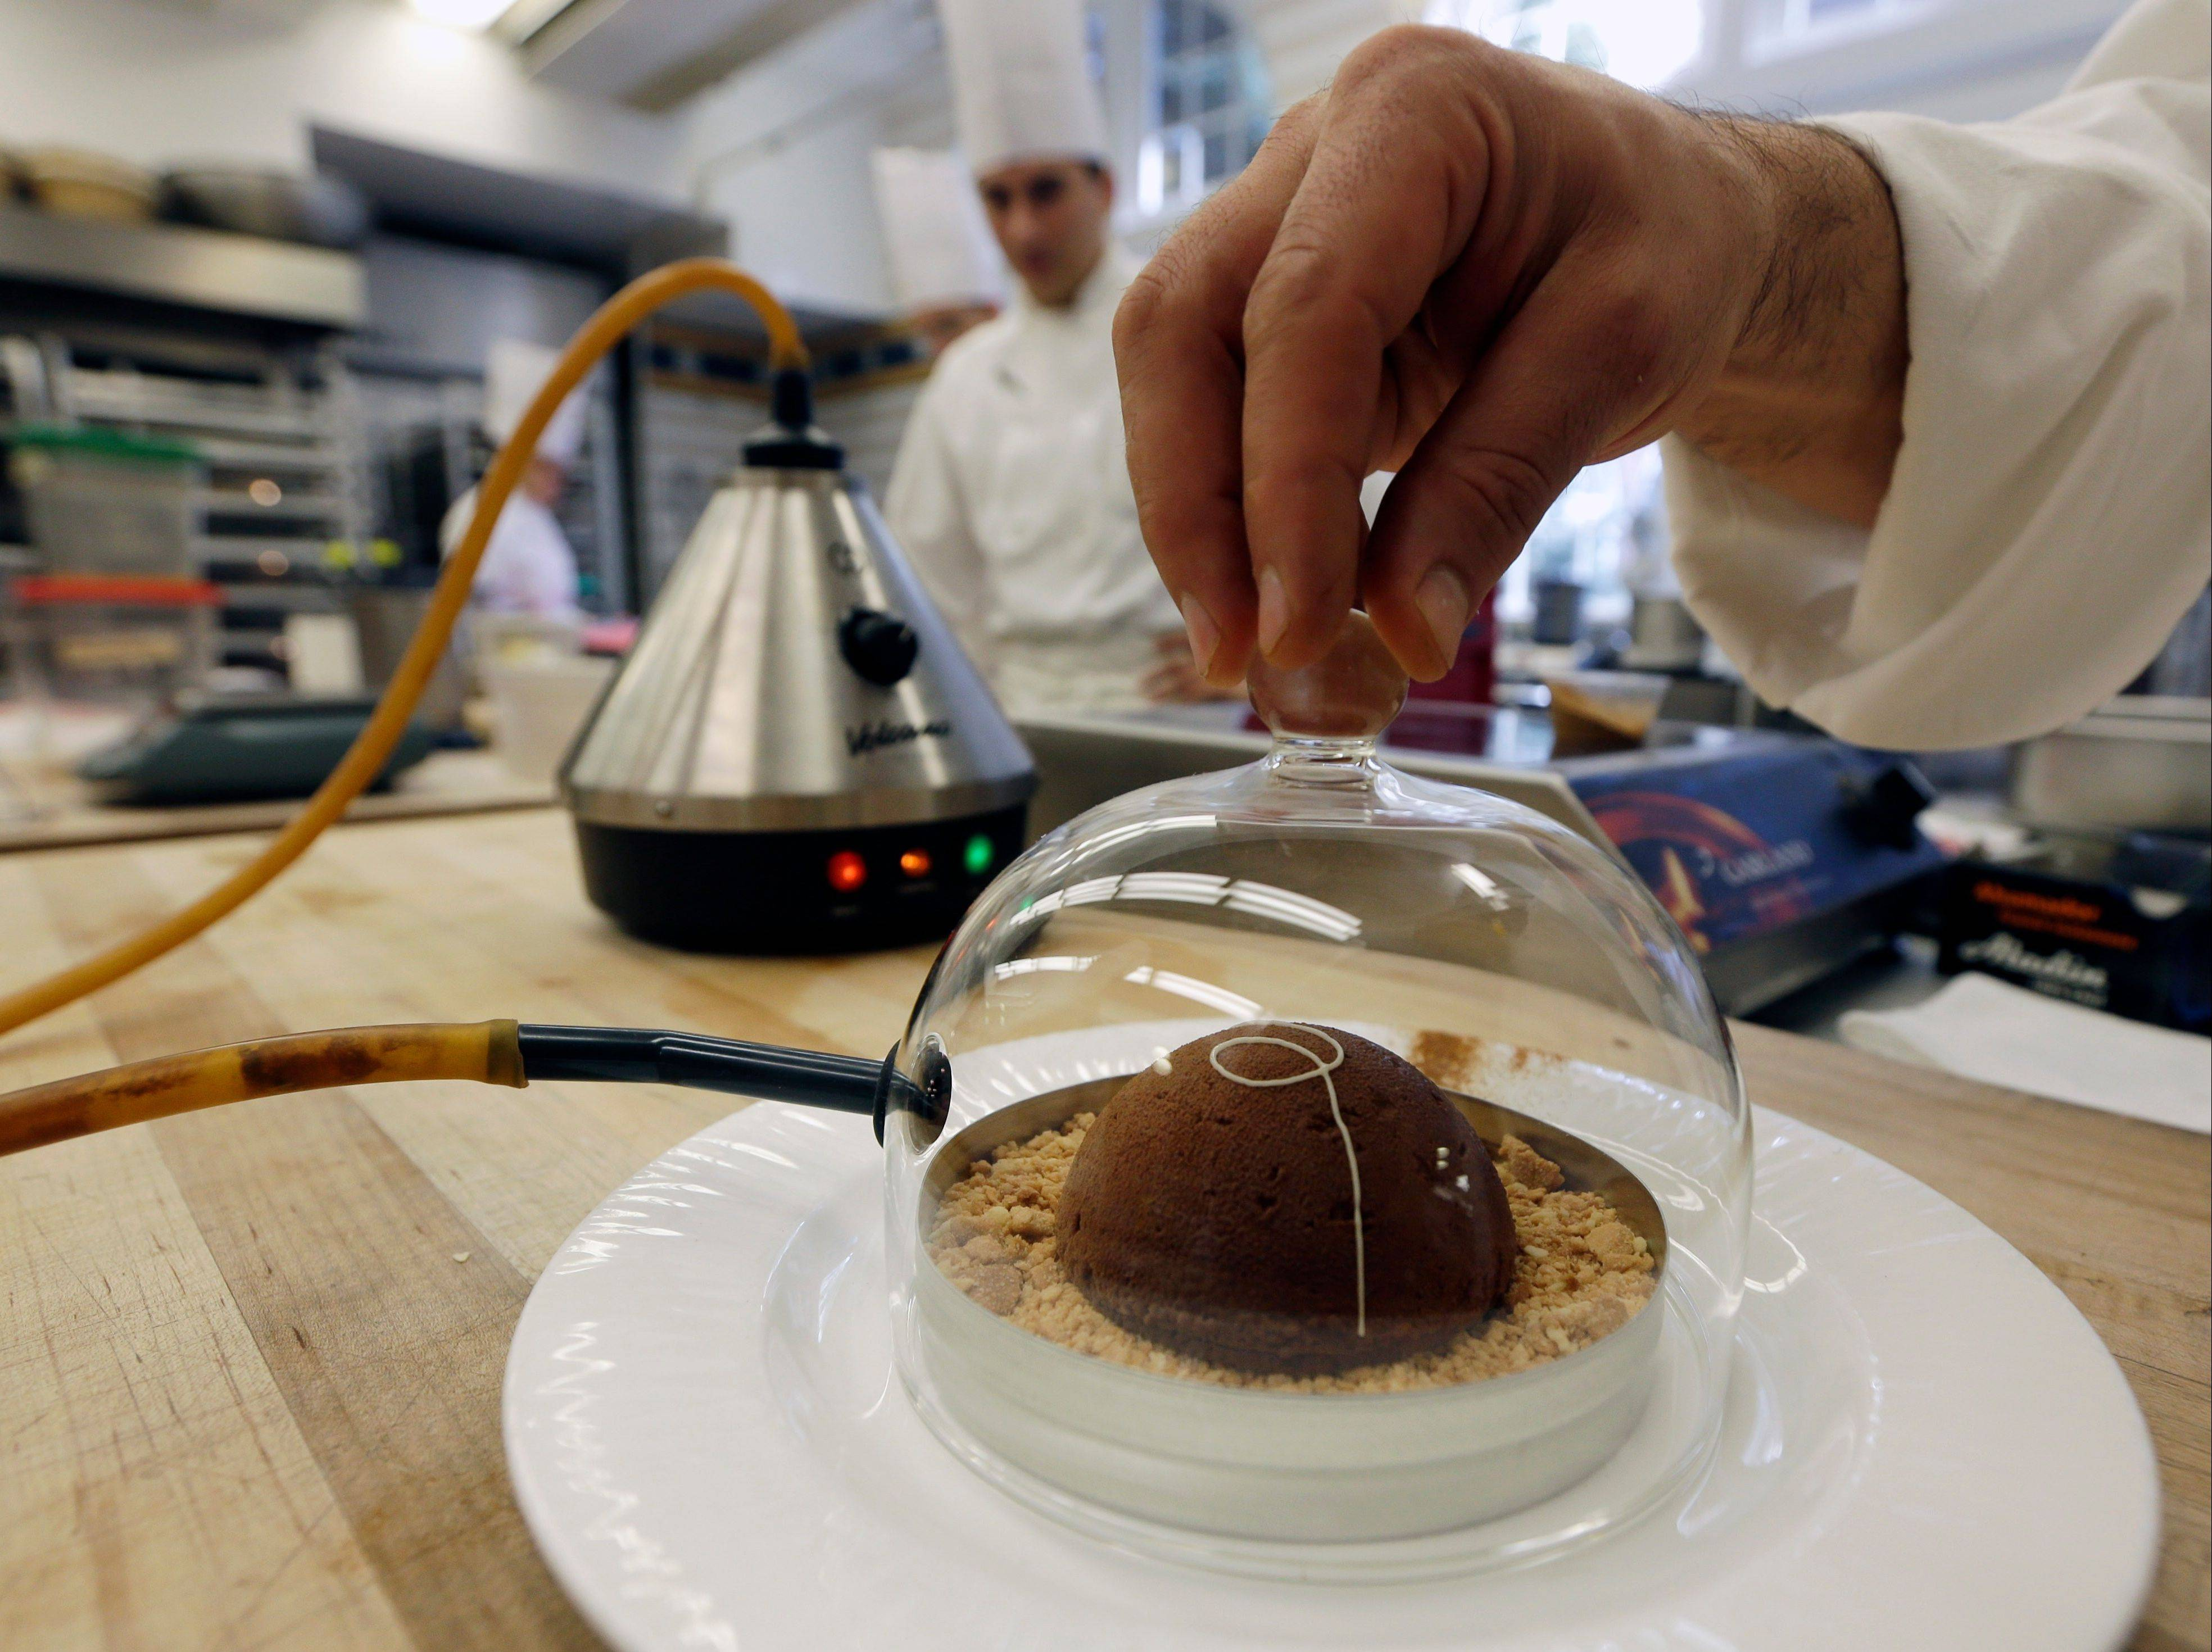 Cinnamon aroma is added to a peanut butter and milk chocolate dome dessert at the Culinary Institute of America in Hyde Park, N.Y. This esteemed cooking school north of New York City is dramatically pumping up science instruction, saying that tomorrow's chefs will need more technical know-how in the age of molecular gastronomy and sous-vide.